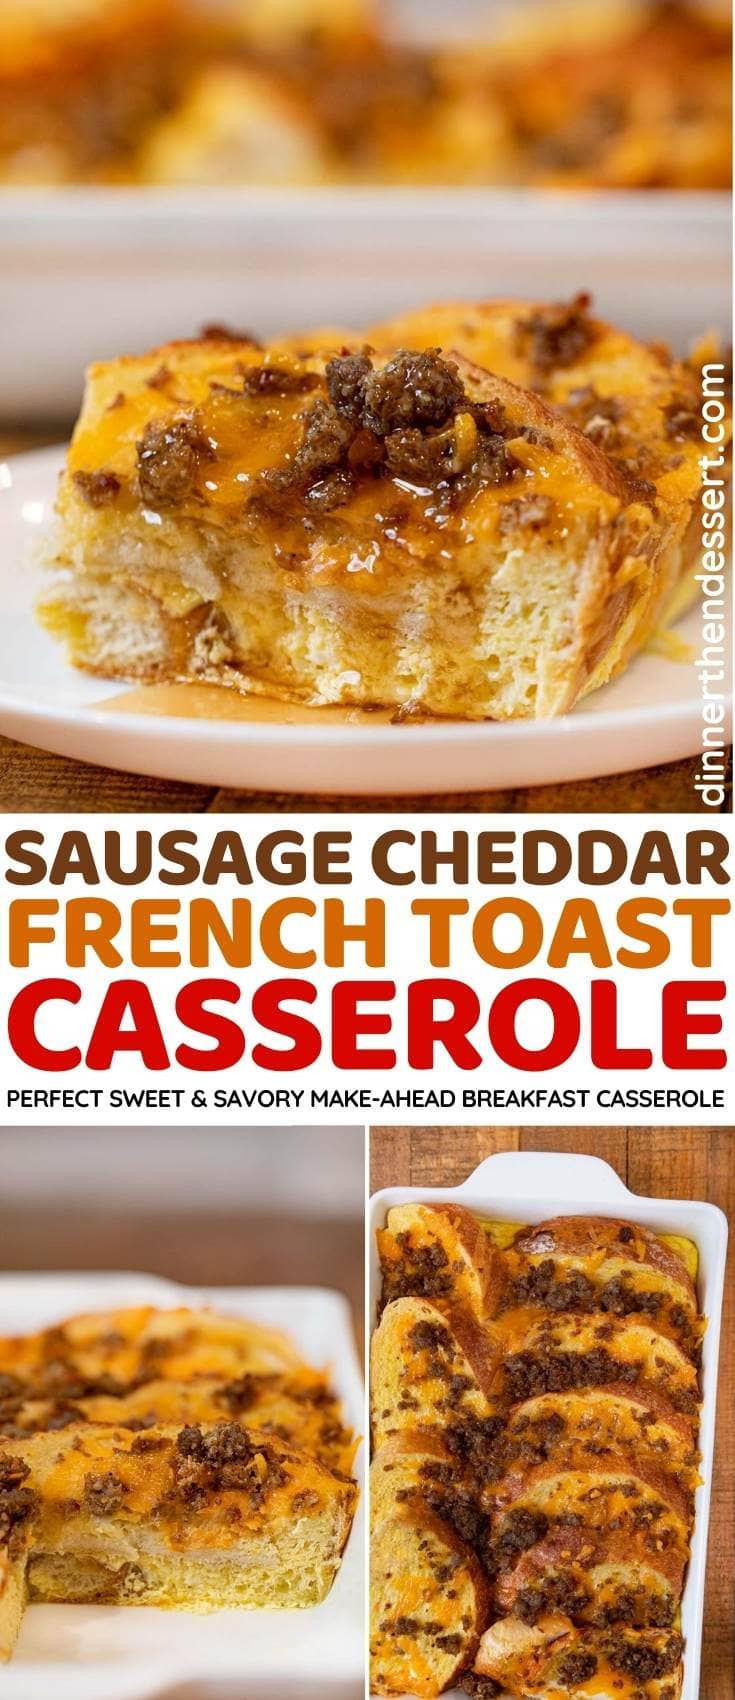 Sausage Cheddar French Toast Casserole collage